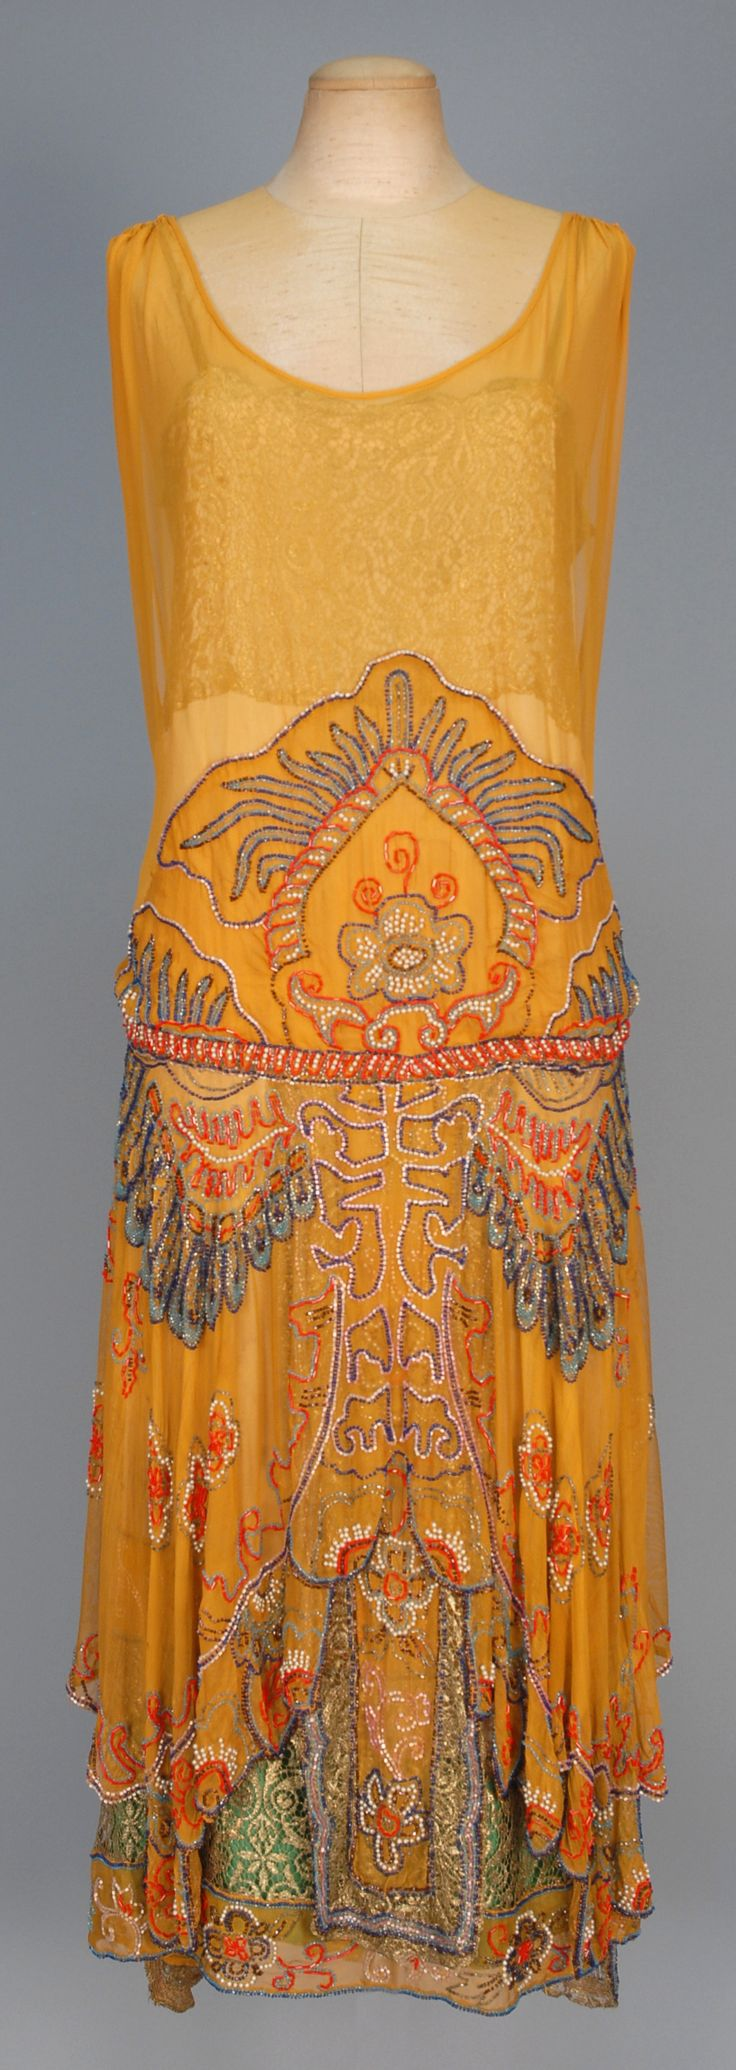 BEADED CHIFFON DINNER DRESS with METALLIC LACE, 1920s. Sleeveless pumpkin silk decorated with elaborate polychrome beadwork and pearls, scalloped and lobed front hem with back streamers revealing satin under-dress with beaded and metallic lace hem and lace bodice top. B-36, L-46. (Tiny hole in skirt and under-dress, few tiny faint spots, very minor bead loss) excellent.